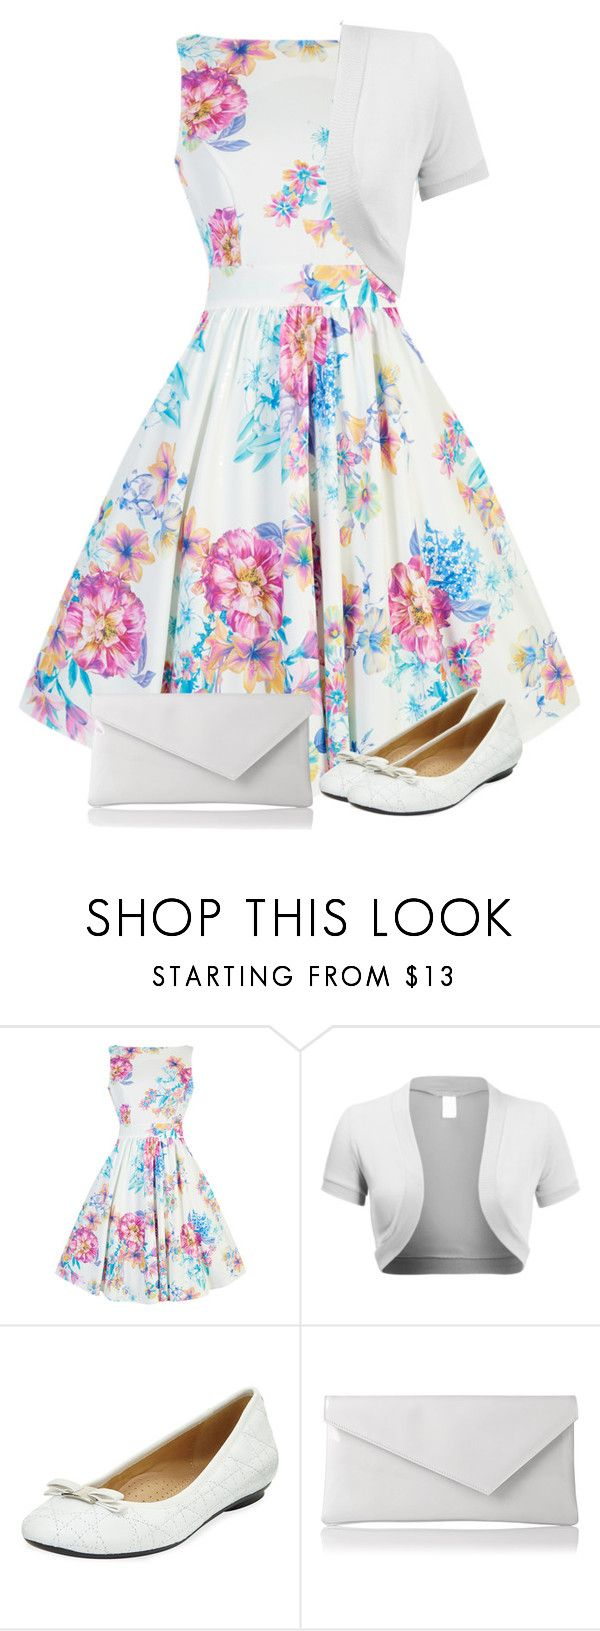 """Untitled #321"" by glitterkittykat on Polyvore featuring Neiman Marcus and L.K.Bennett"